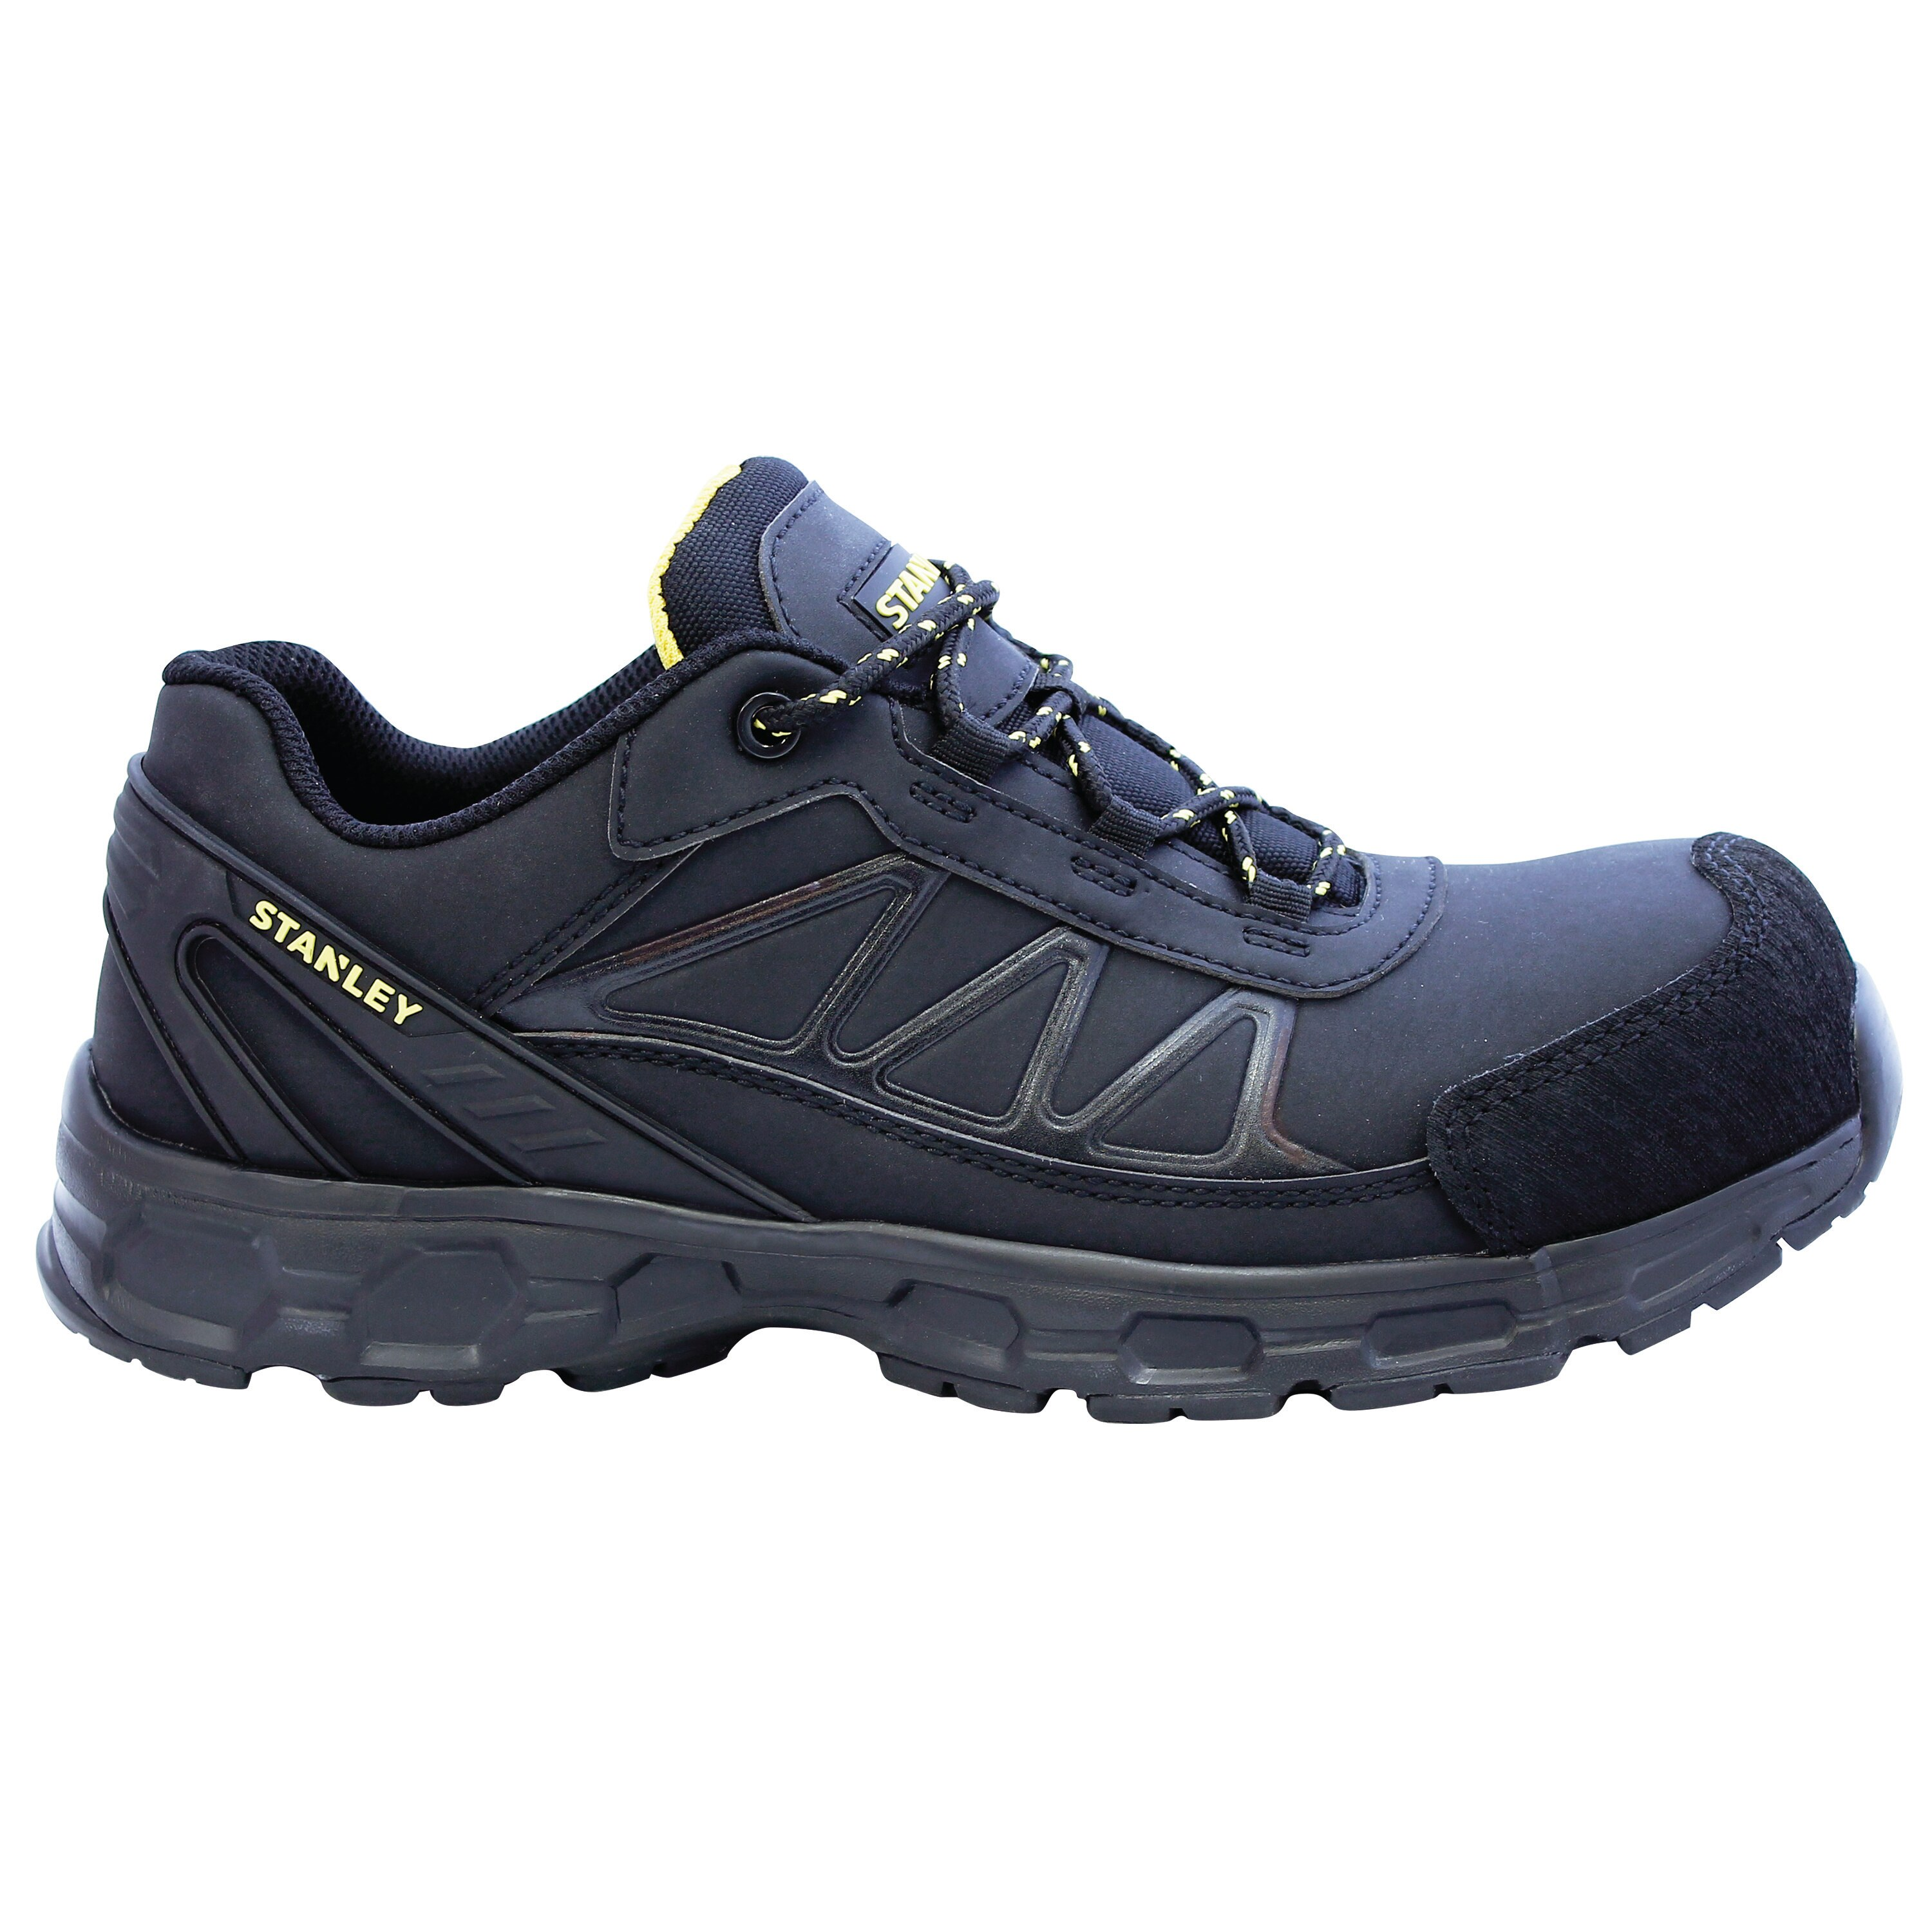 Stanley Tools - STANLEY Laser Composite Toe Athletic Work Shoe - FSA171S